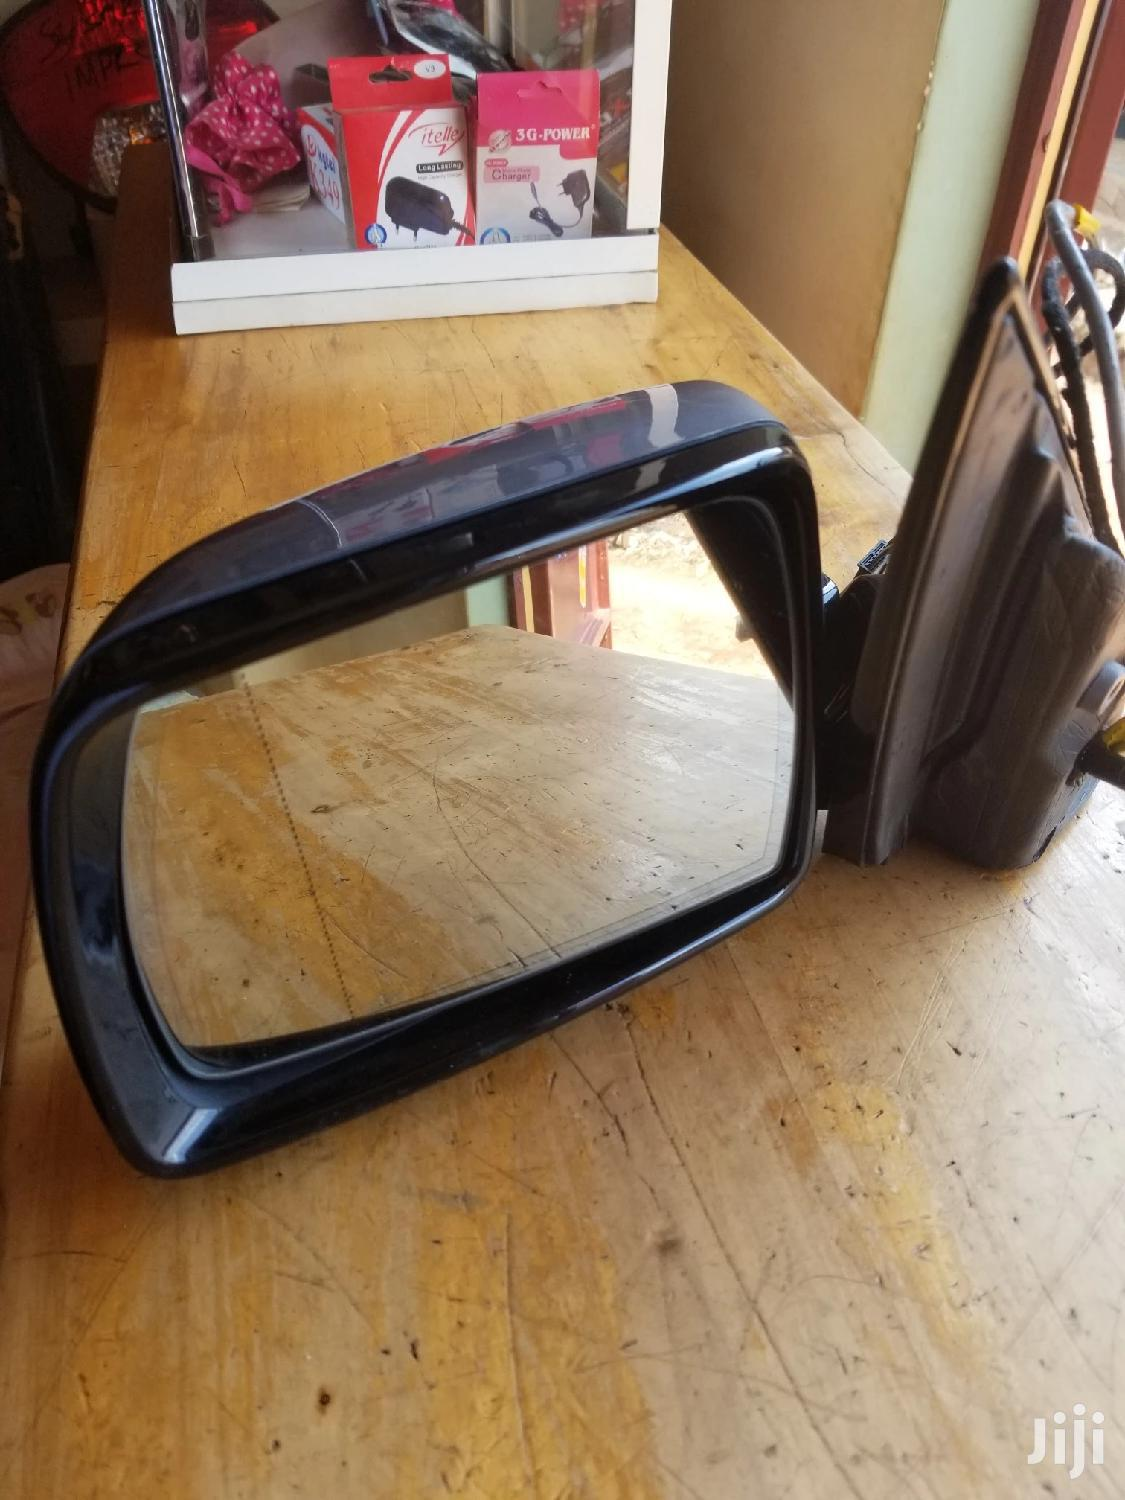 BMW X3 Side Mirrors In Stock | Vehicle Parts & Accessories for sale in Kampala, Central Region, Uganda